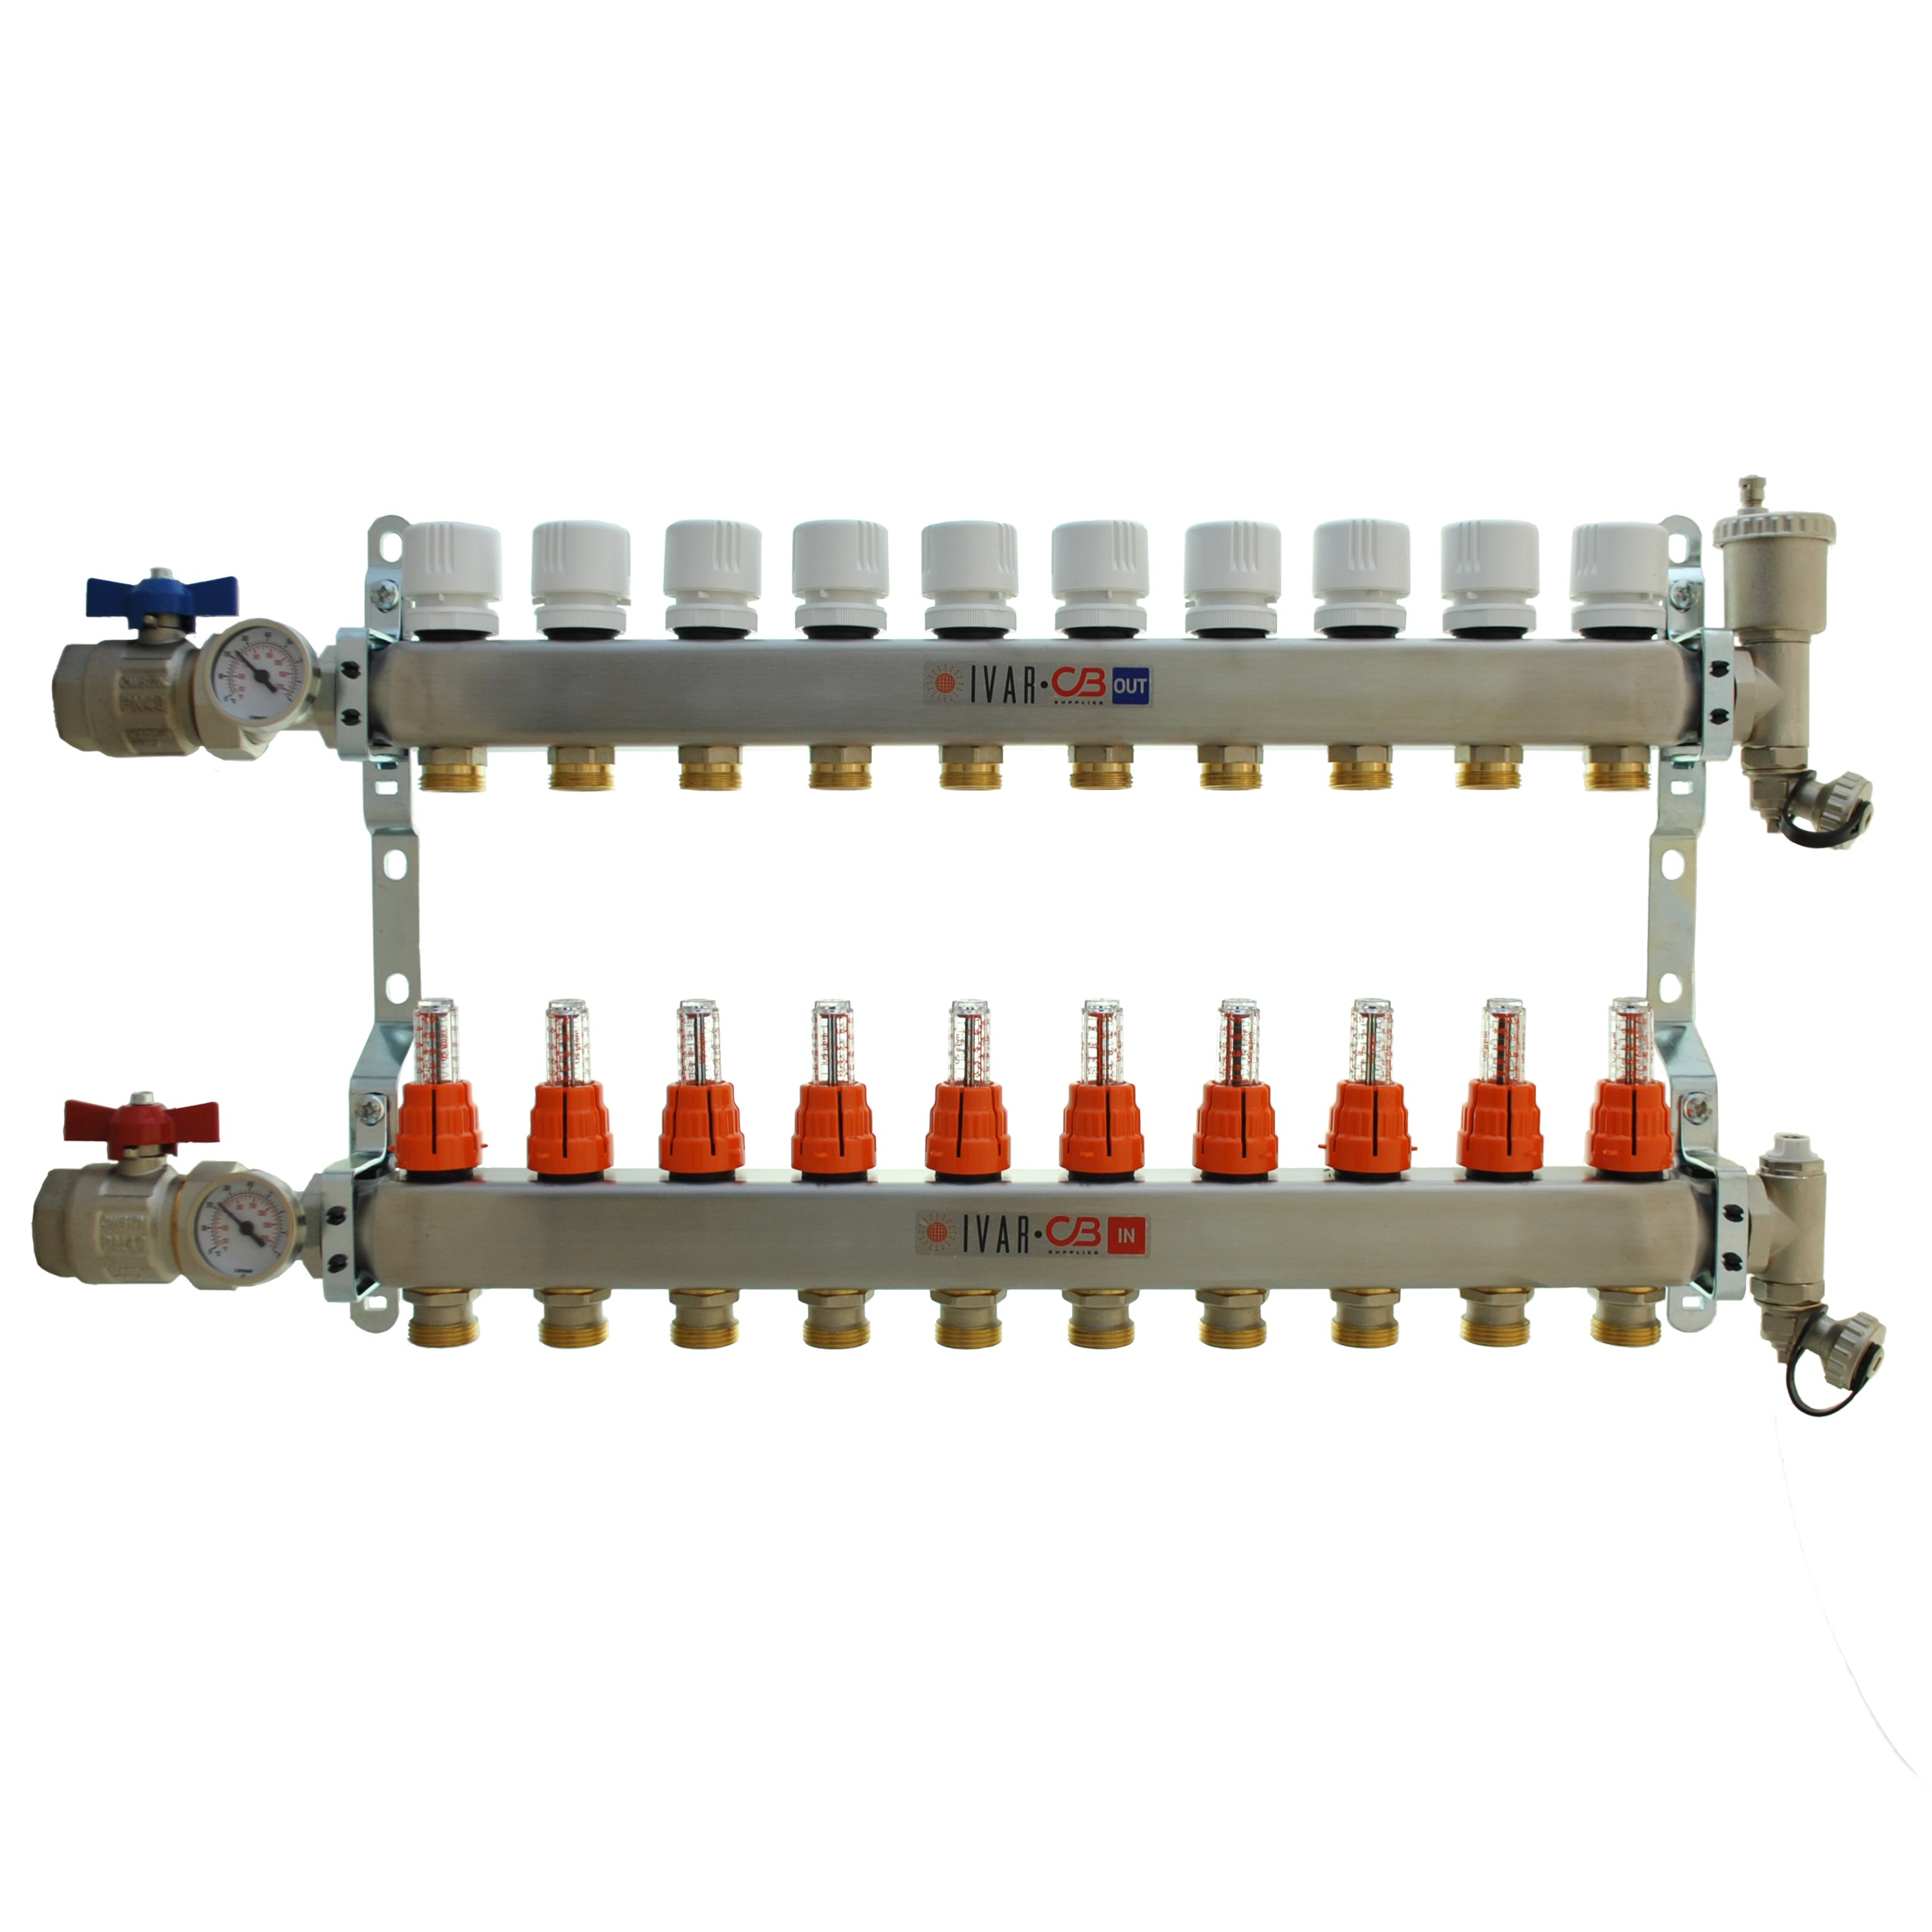 "1"" IVAR Stainless Steel Hydronic Manifold for Radiant Floor Heating - 10 ports"